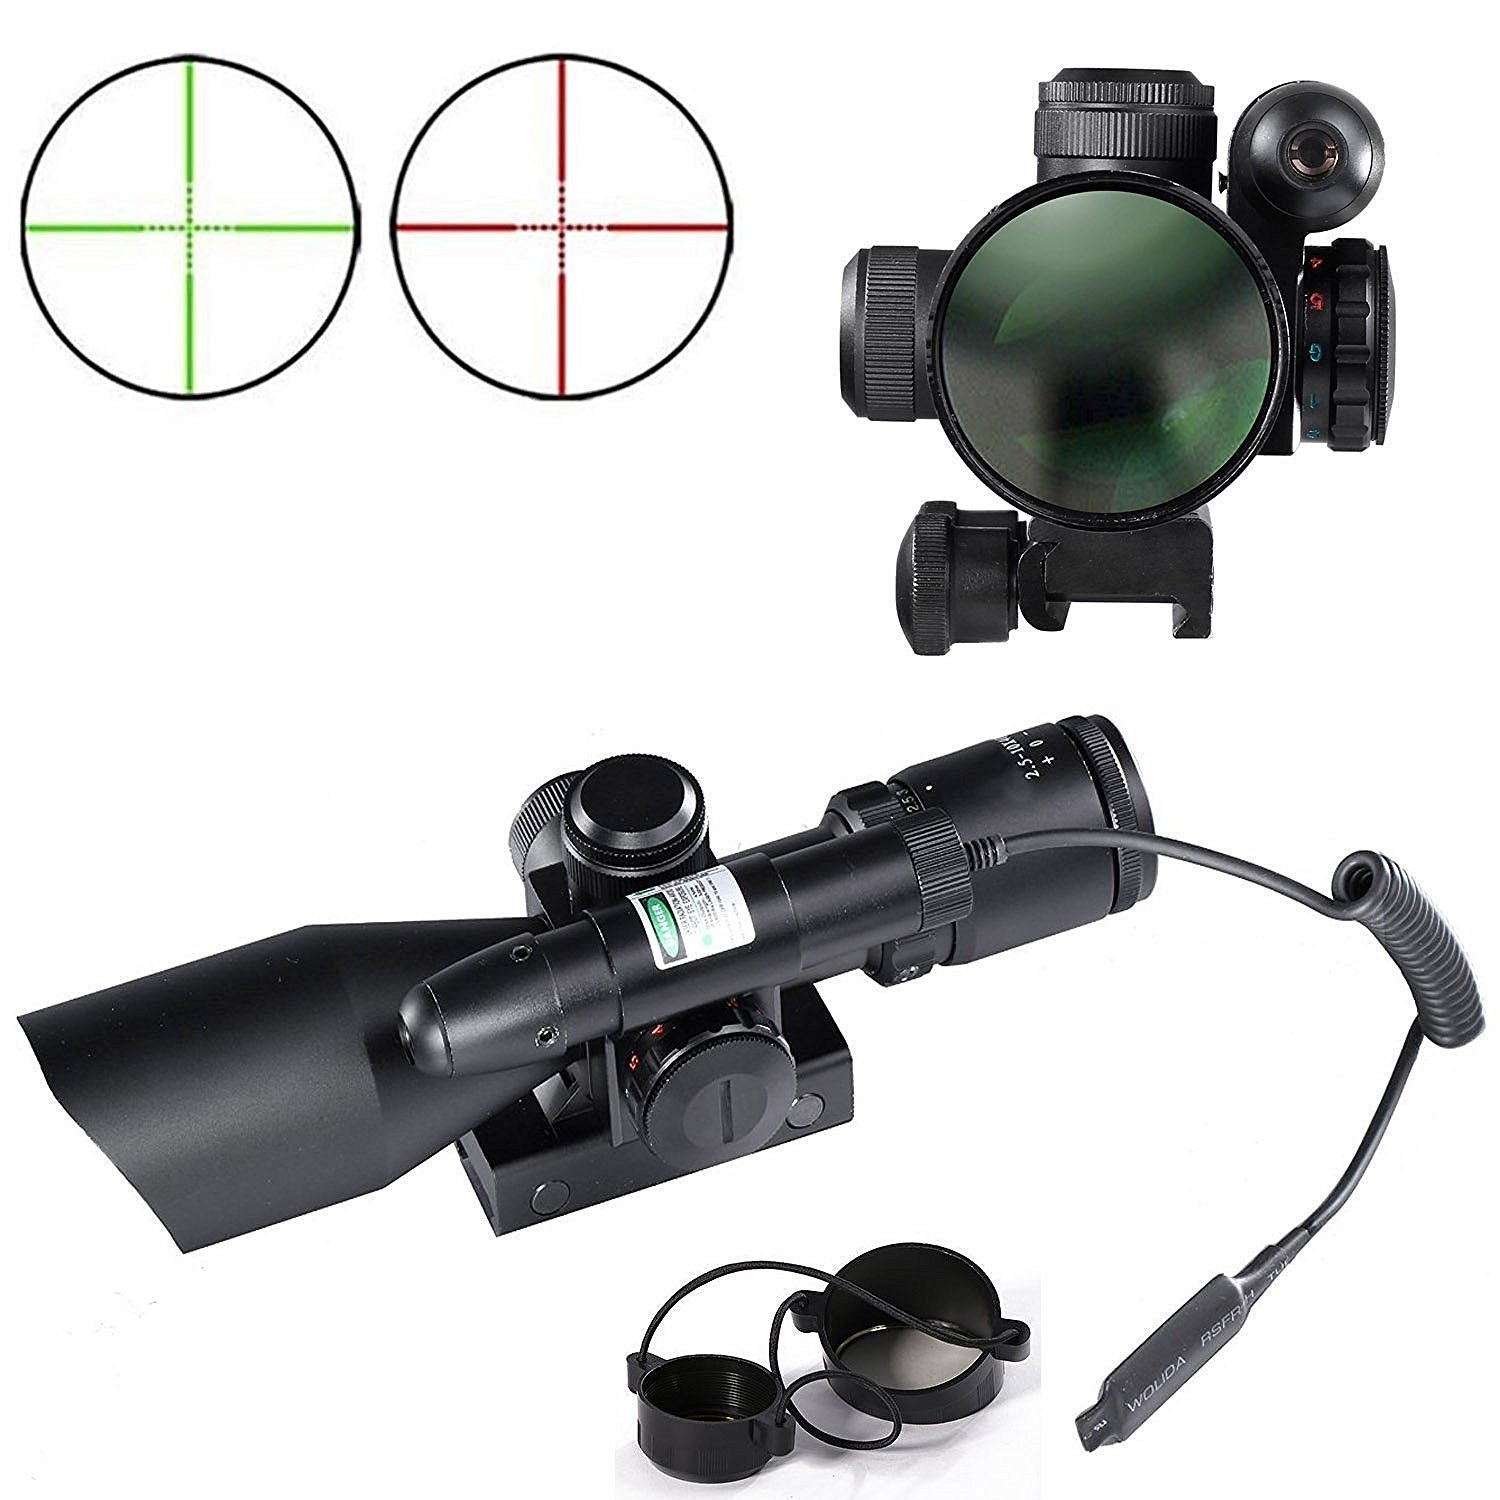 Tactical Optics Hunting Rifle Scope Red & Green Dual illuminated Mil-dot w/ Rail Mount Riflescope a woman kneeling in the big city